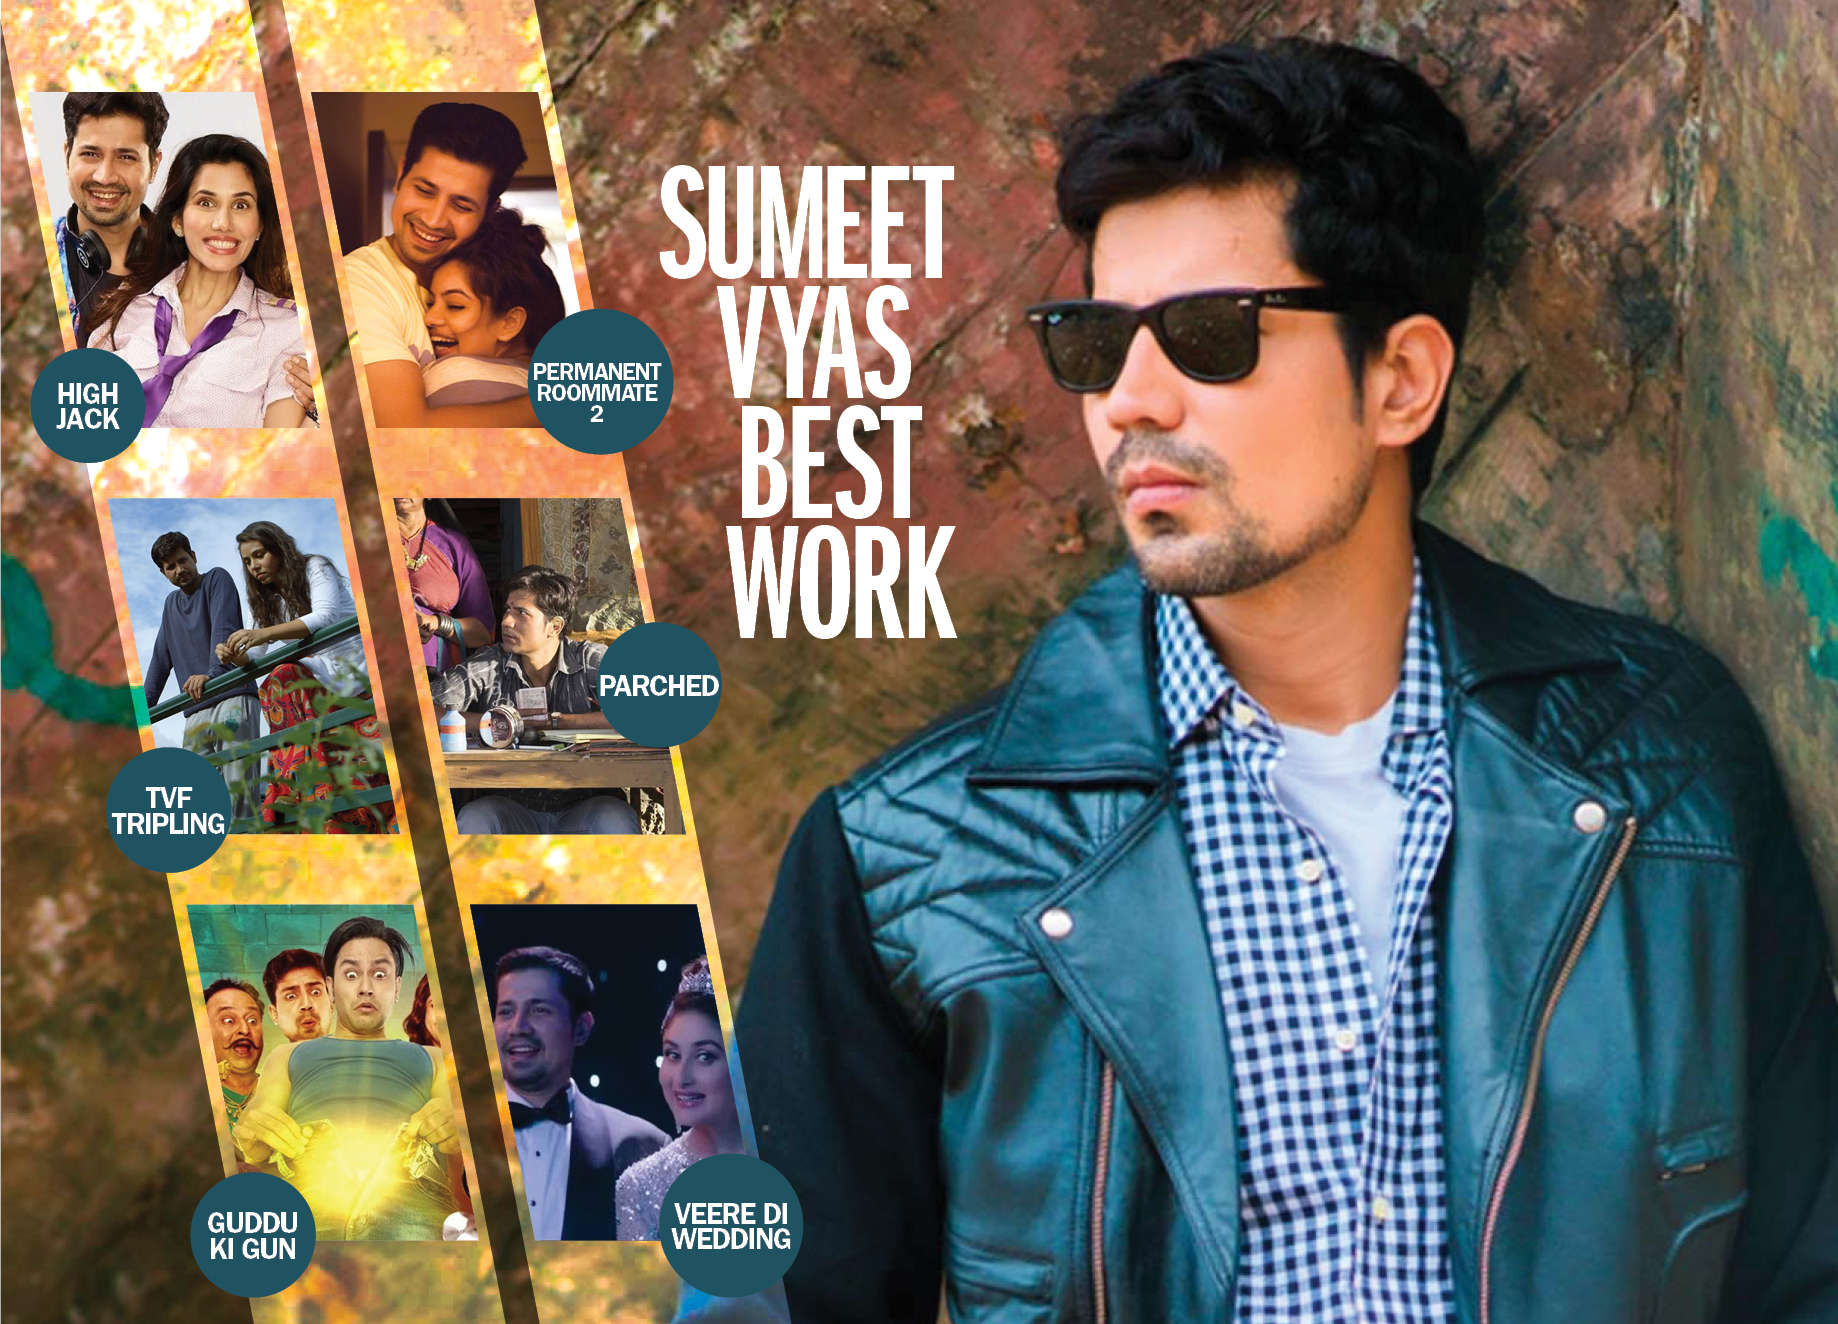 Exclusive! Sumeet Vyas on Veere Di Wedding, Kareena Kapoor Khan & more